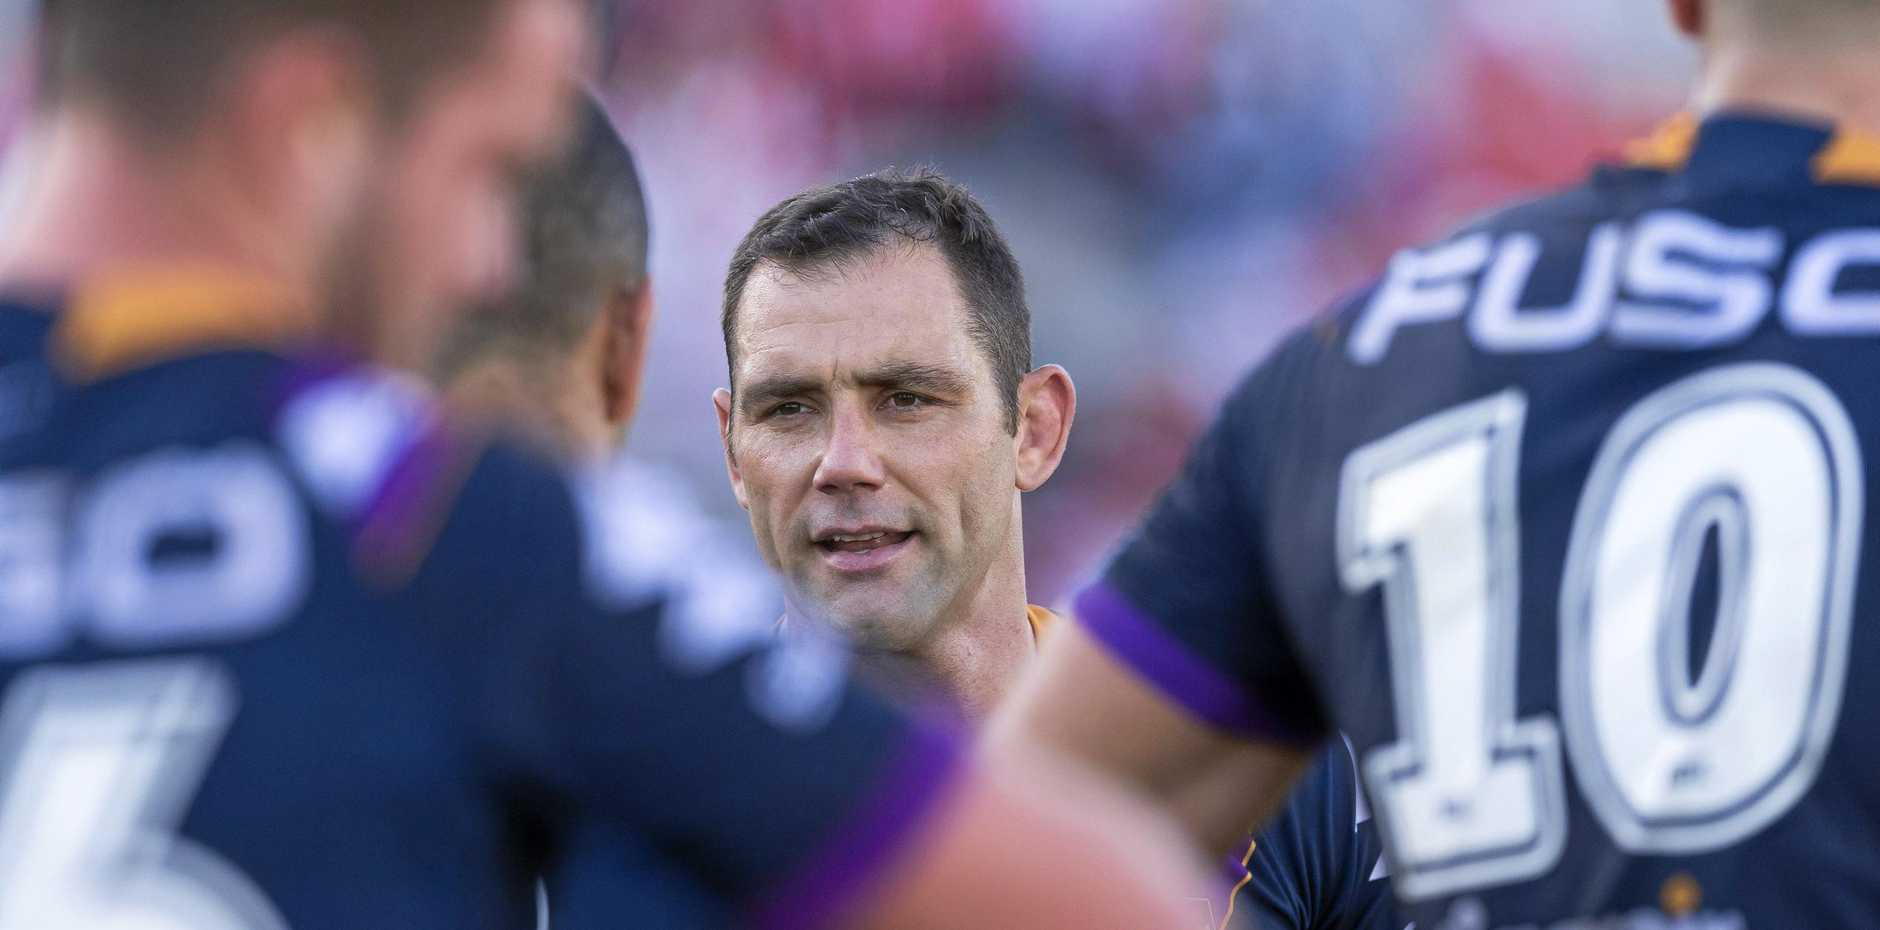 Cameron Smith could face another public showdown with former teammate Cooper Cronk.